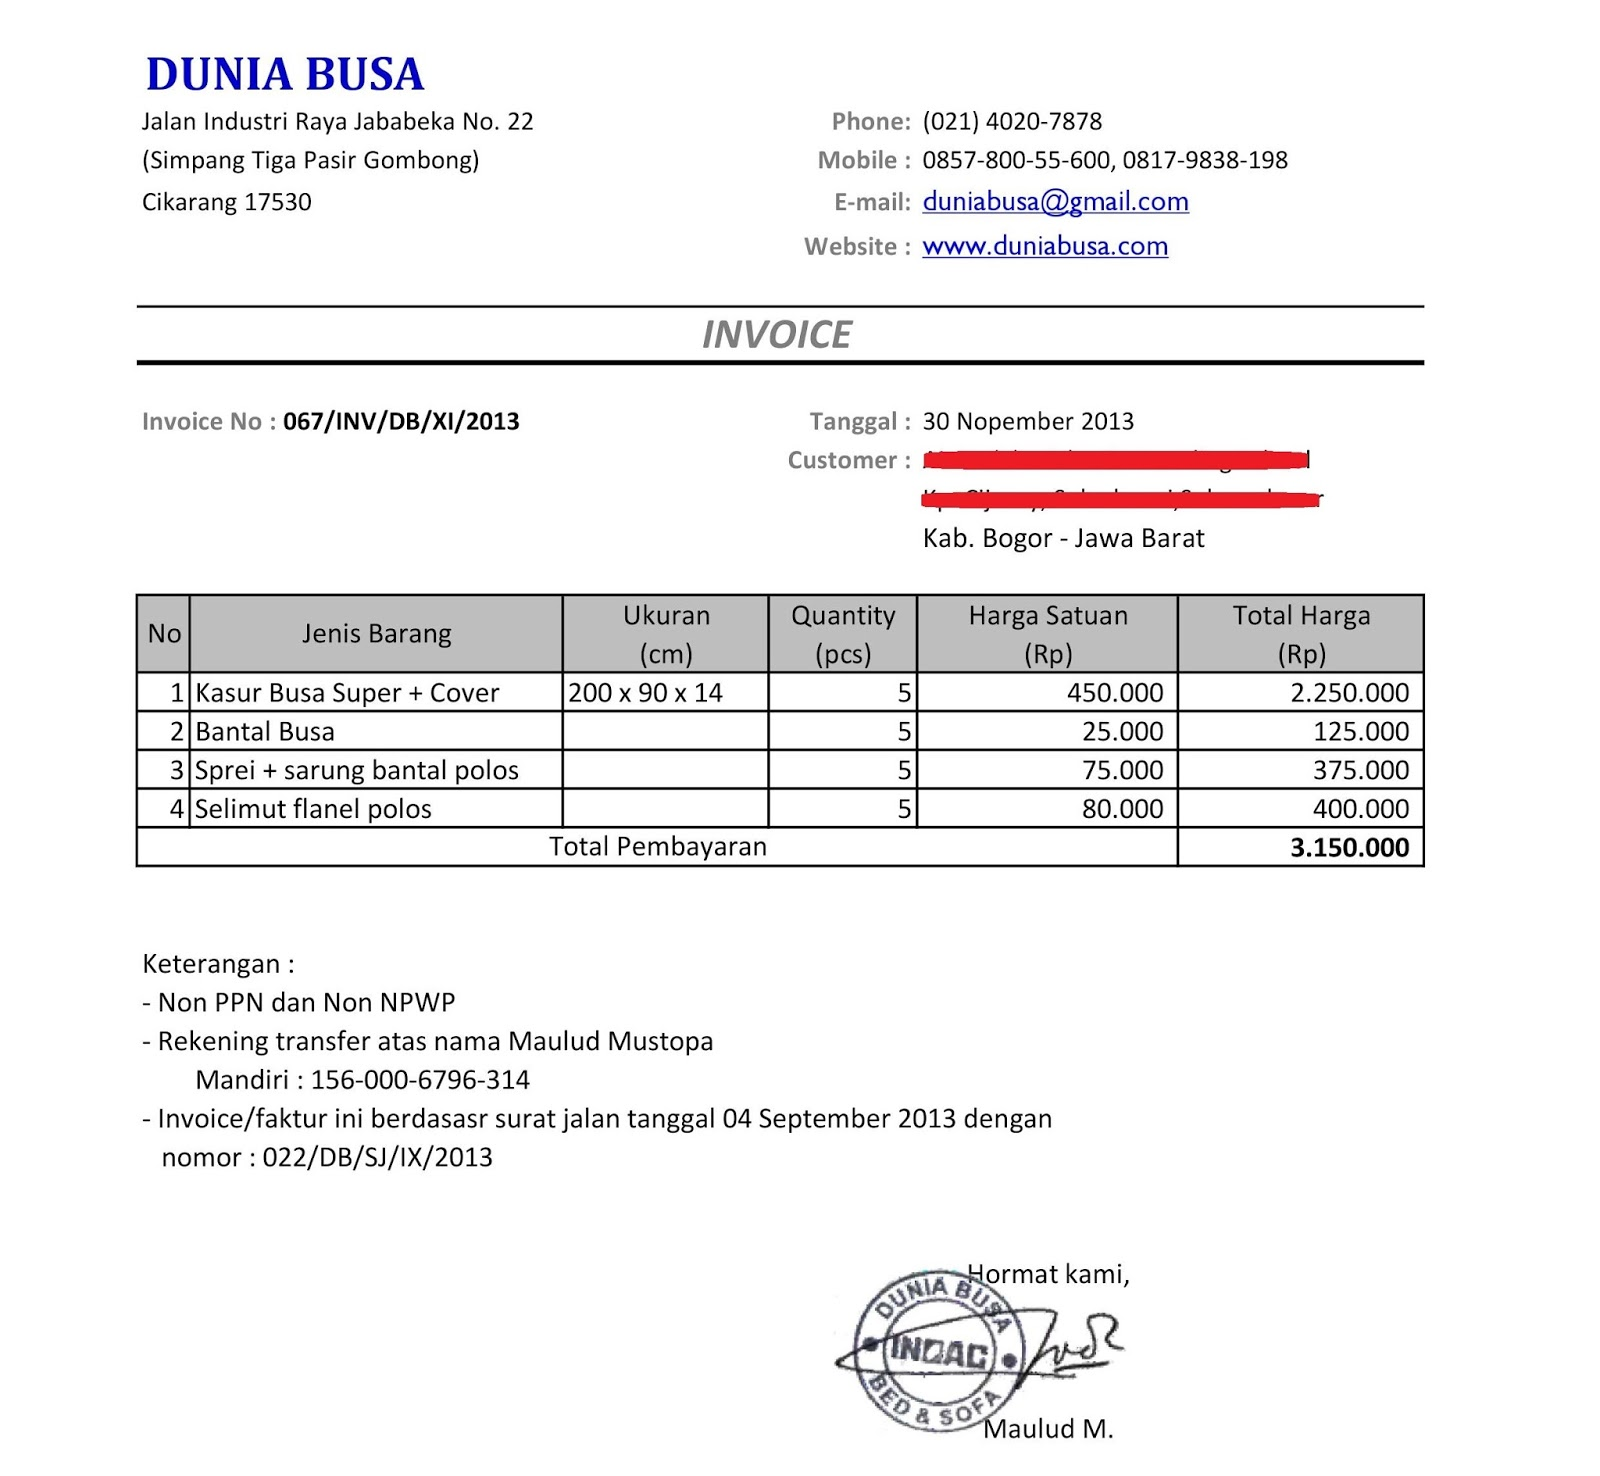 Aldiablosus  Unusual Free Invoice Online  Create Invoice Online  Invoice Template  With Exquisite Contoh Format Invoice Atau Surat Tagihan  Brankas Arsip  Free Invoice Online With Adorable Invoice Programs For Small Business Free Also Invoices Forms In Addition How To Generate An Invoice And Print An Invoice As Well As New Car Invoice Prices  Additionally Outstanding Invoice Letter From Sklepco With Aldiablosus  Exquisite Free Invoice Online  Create Invoice Online  Invoice Template  With Adorable Contoh Format Invoice Atau Surat Tagihan  Brankas Arsip  Free Invoice Online And Unusual Invoice Programs For Small Business Free Also Invoices Forms In Addition How To Generate An Invoice From Sklepco